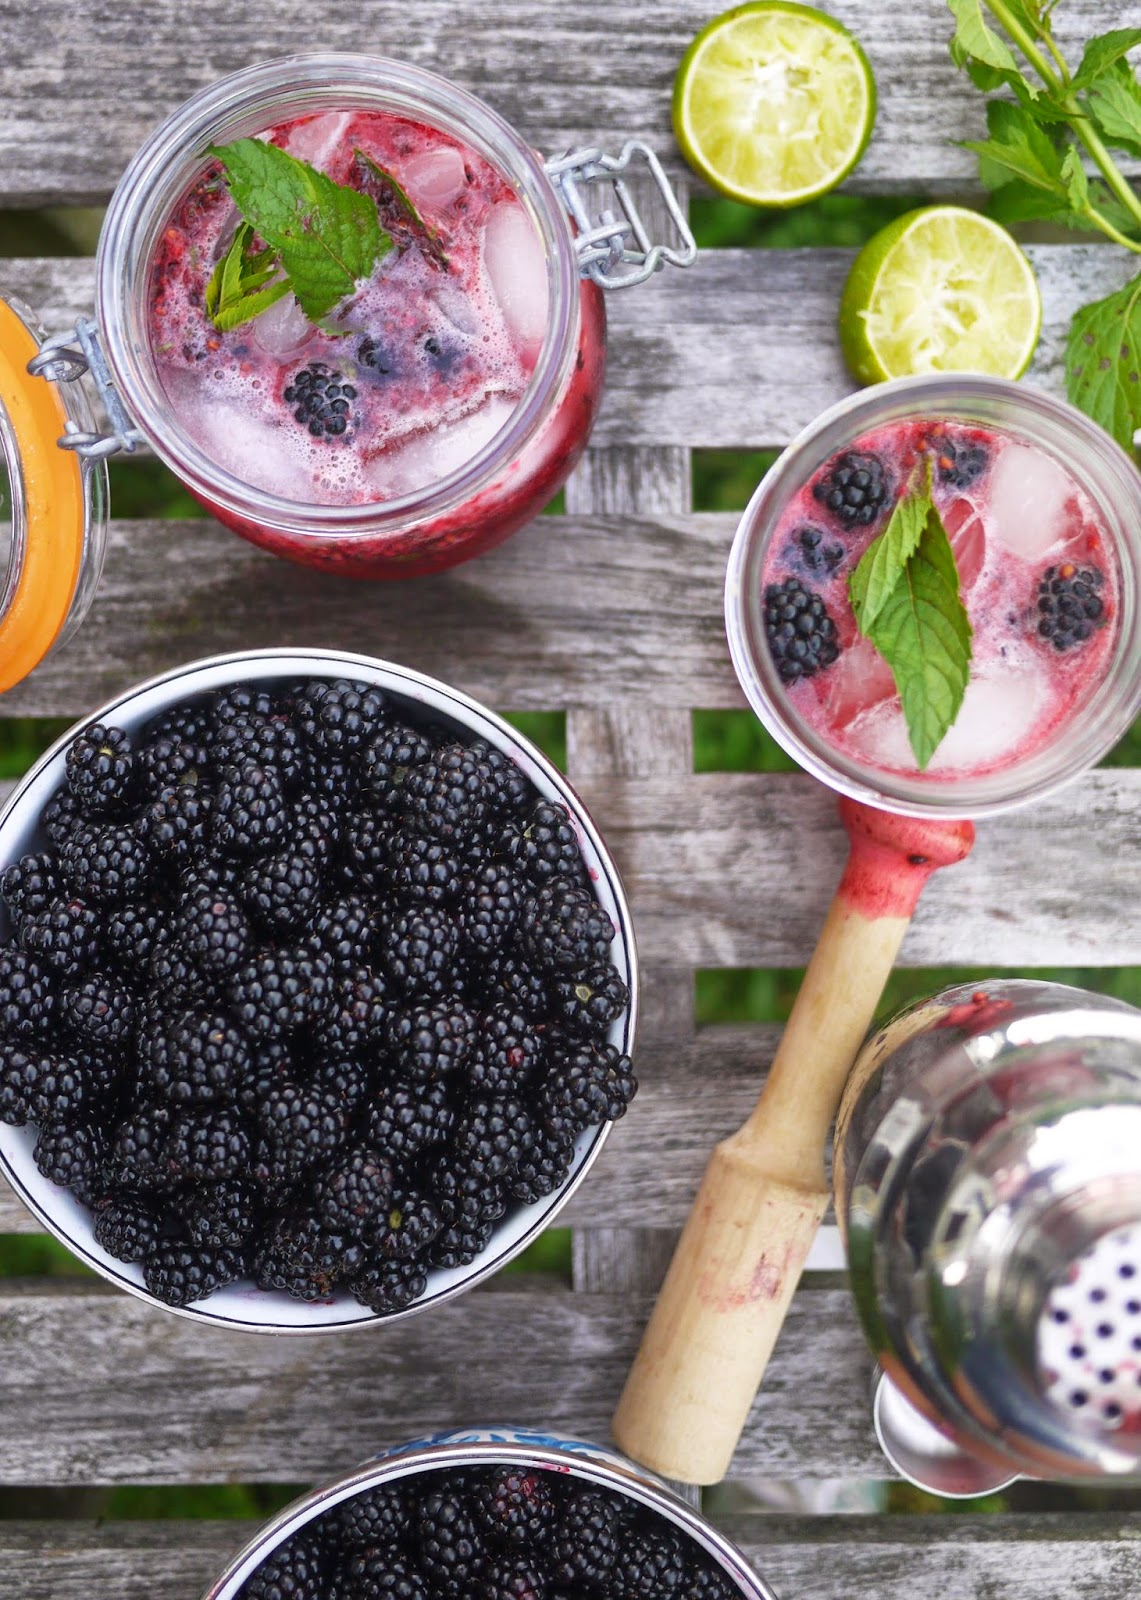 Cocktail Hour: Blackberry Bramble Smash - The Buggy Blog